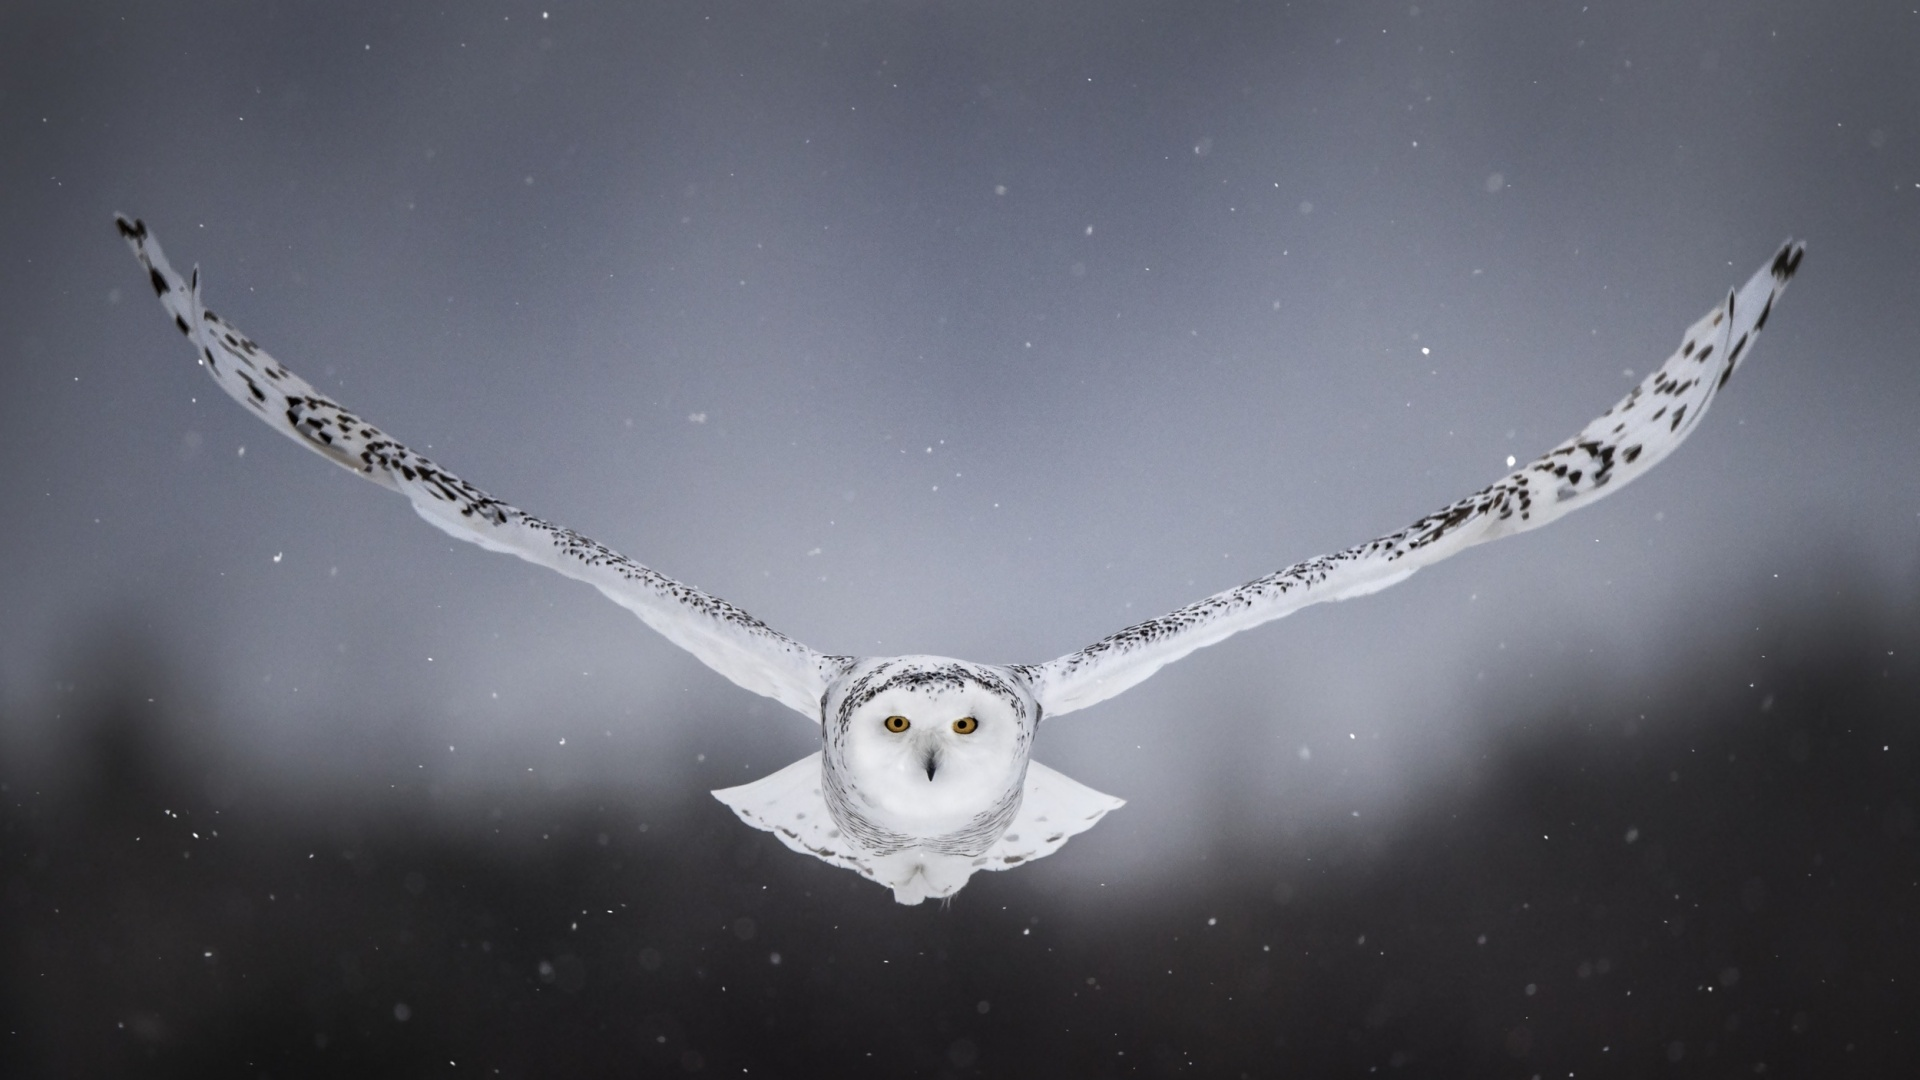 Polar Owl wallpaper for pc